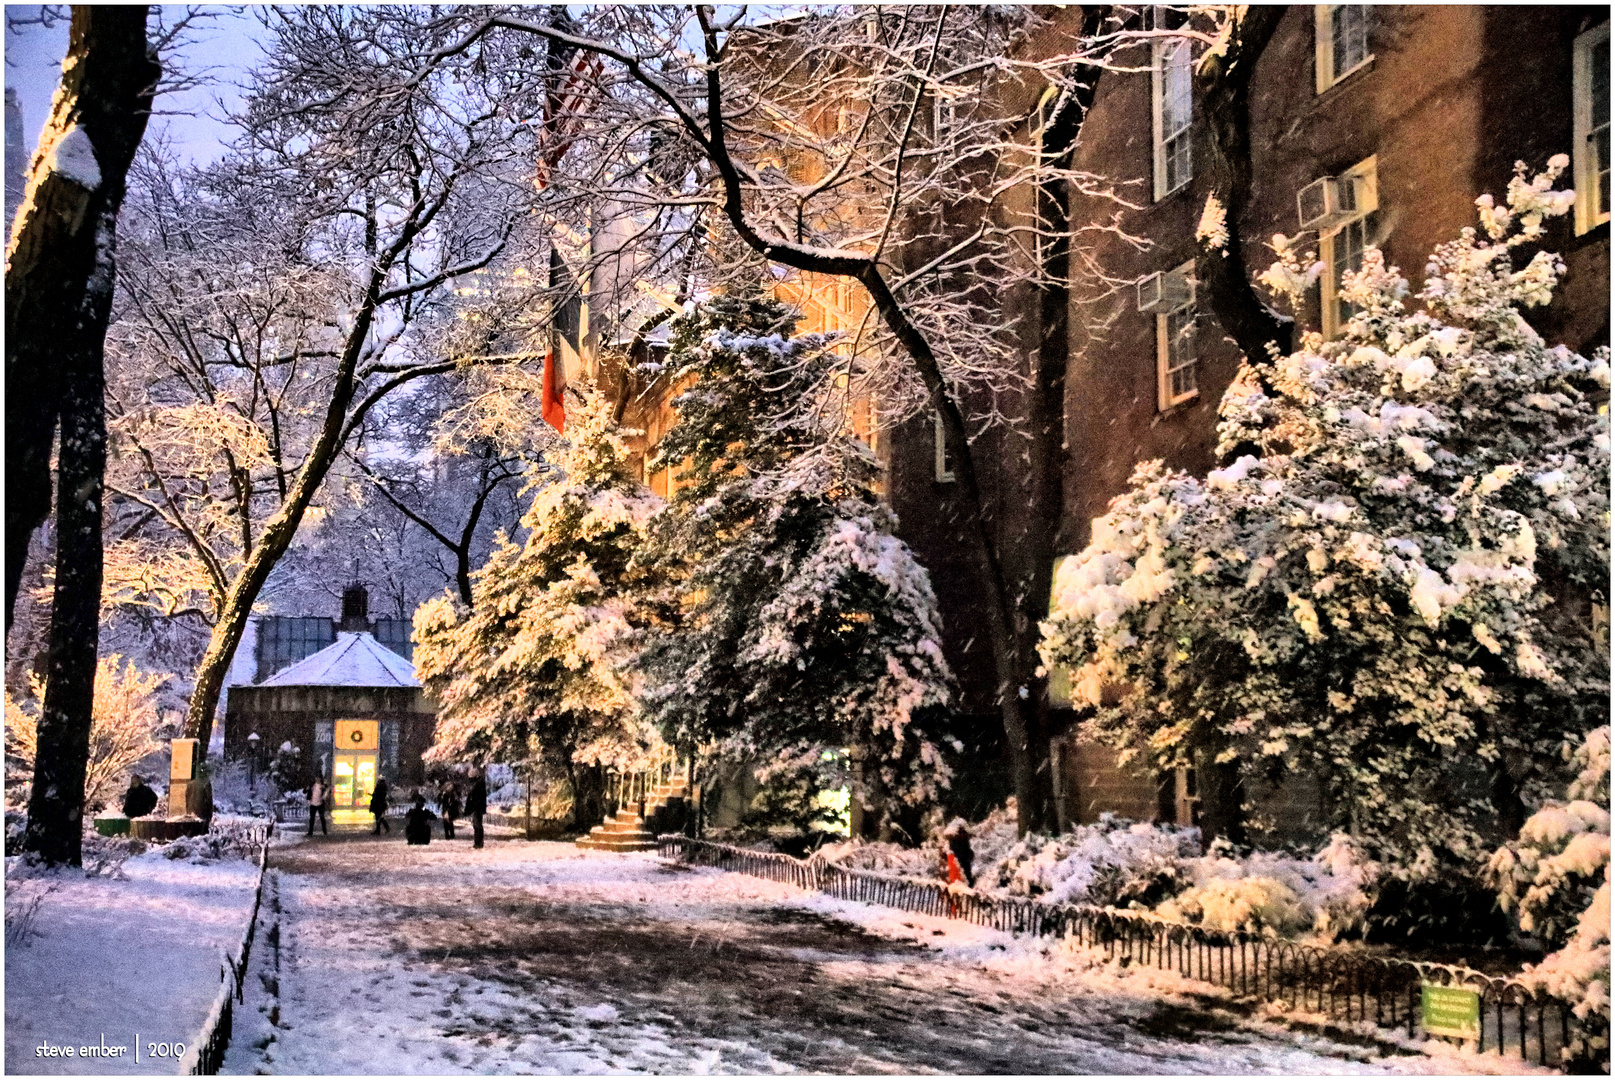 On a Snowy Evening in Central Park - No.12